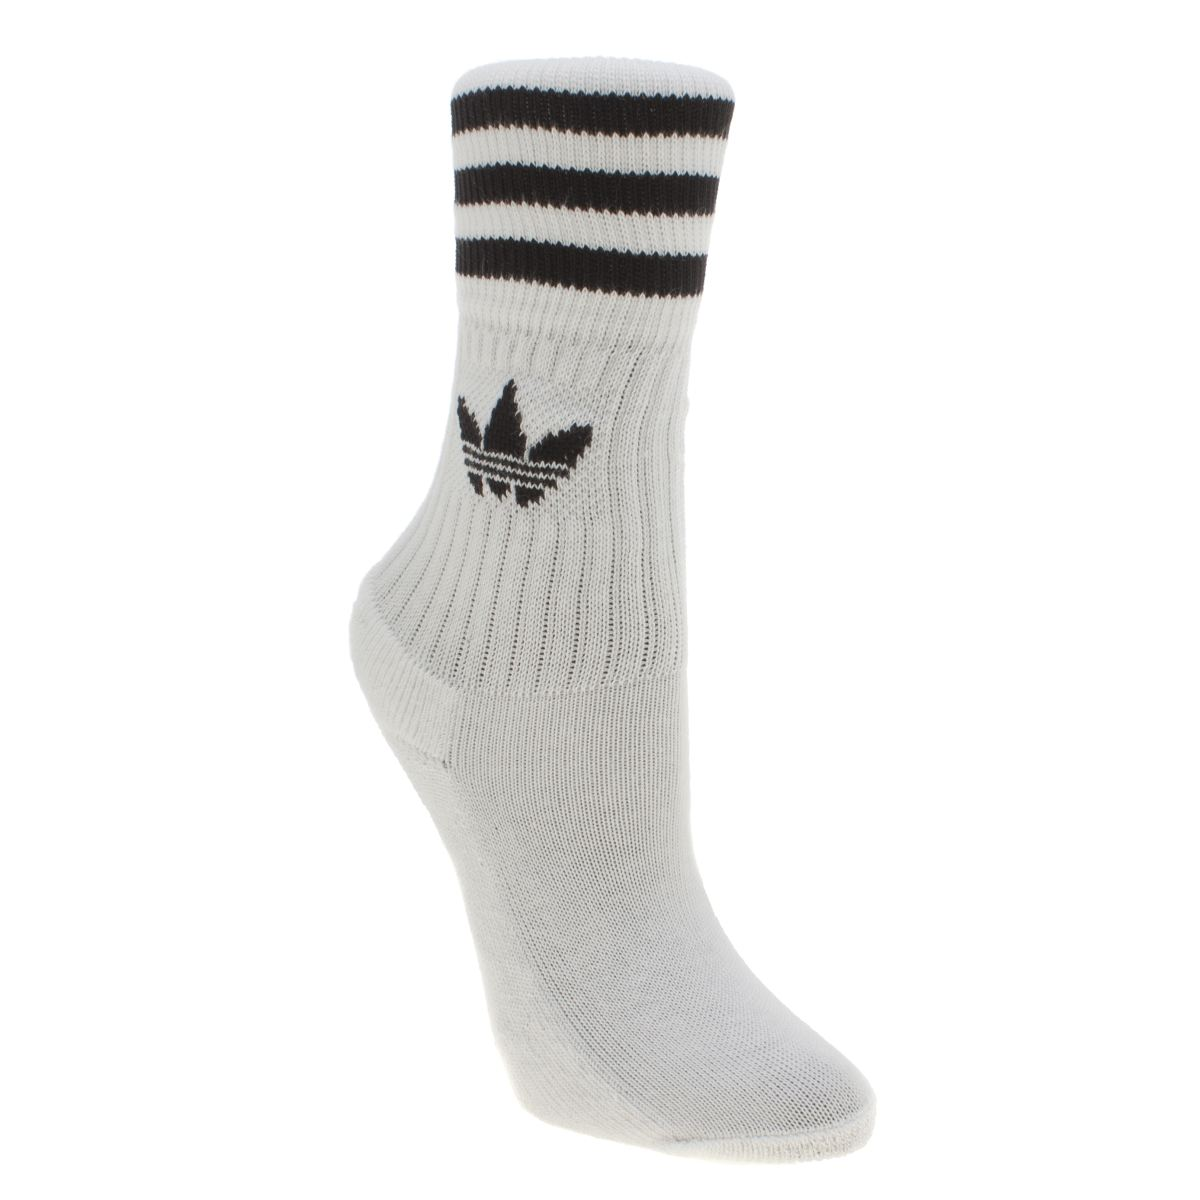 Photo of Adidas white & black kids solid crew 3 pack socks